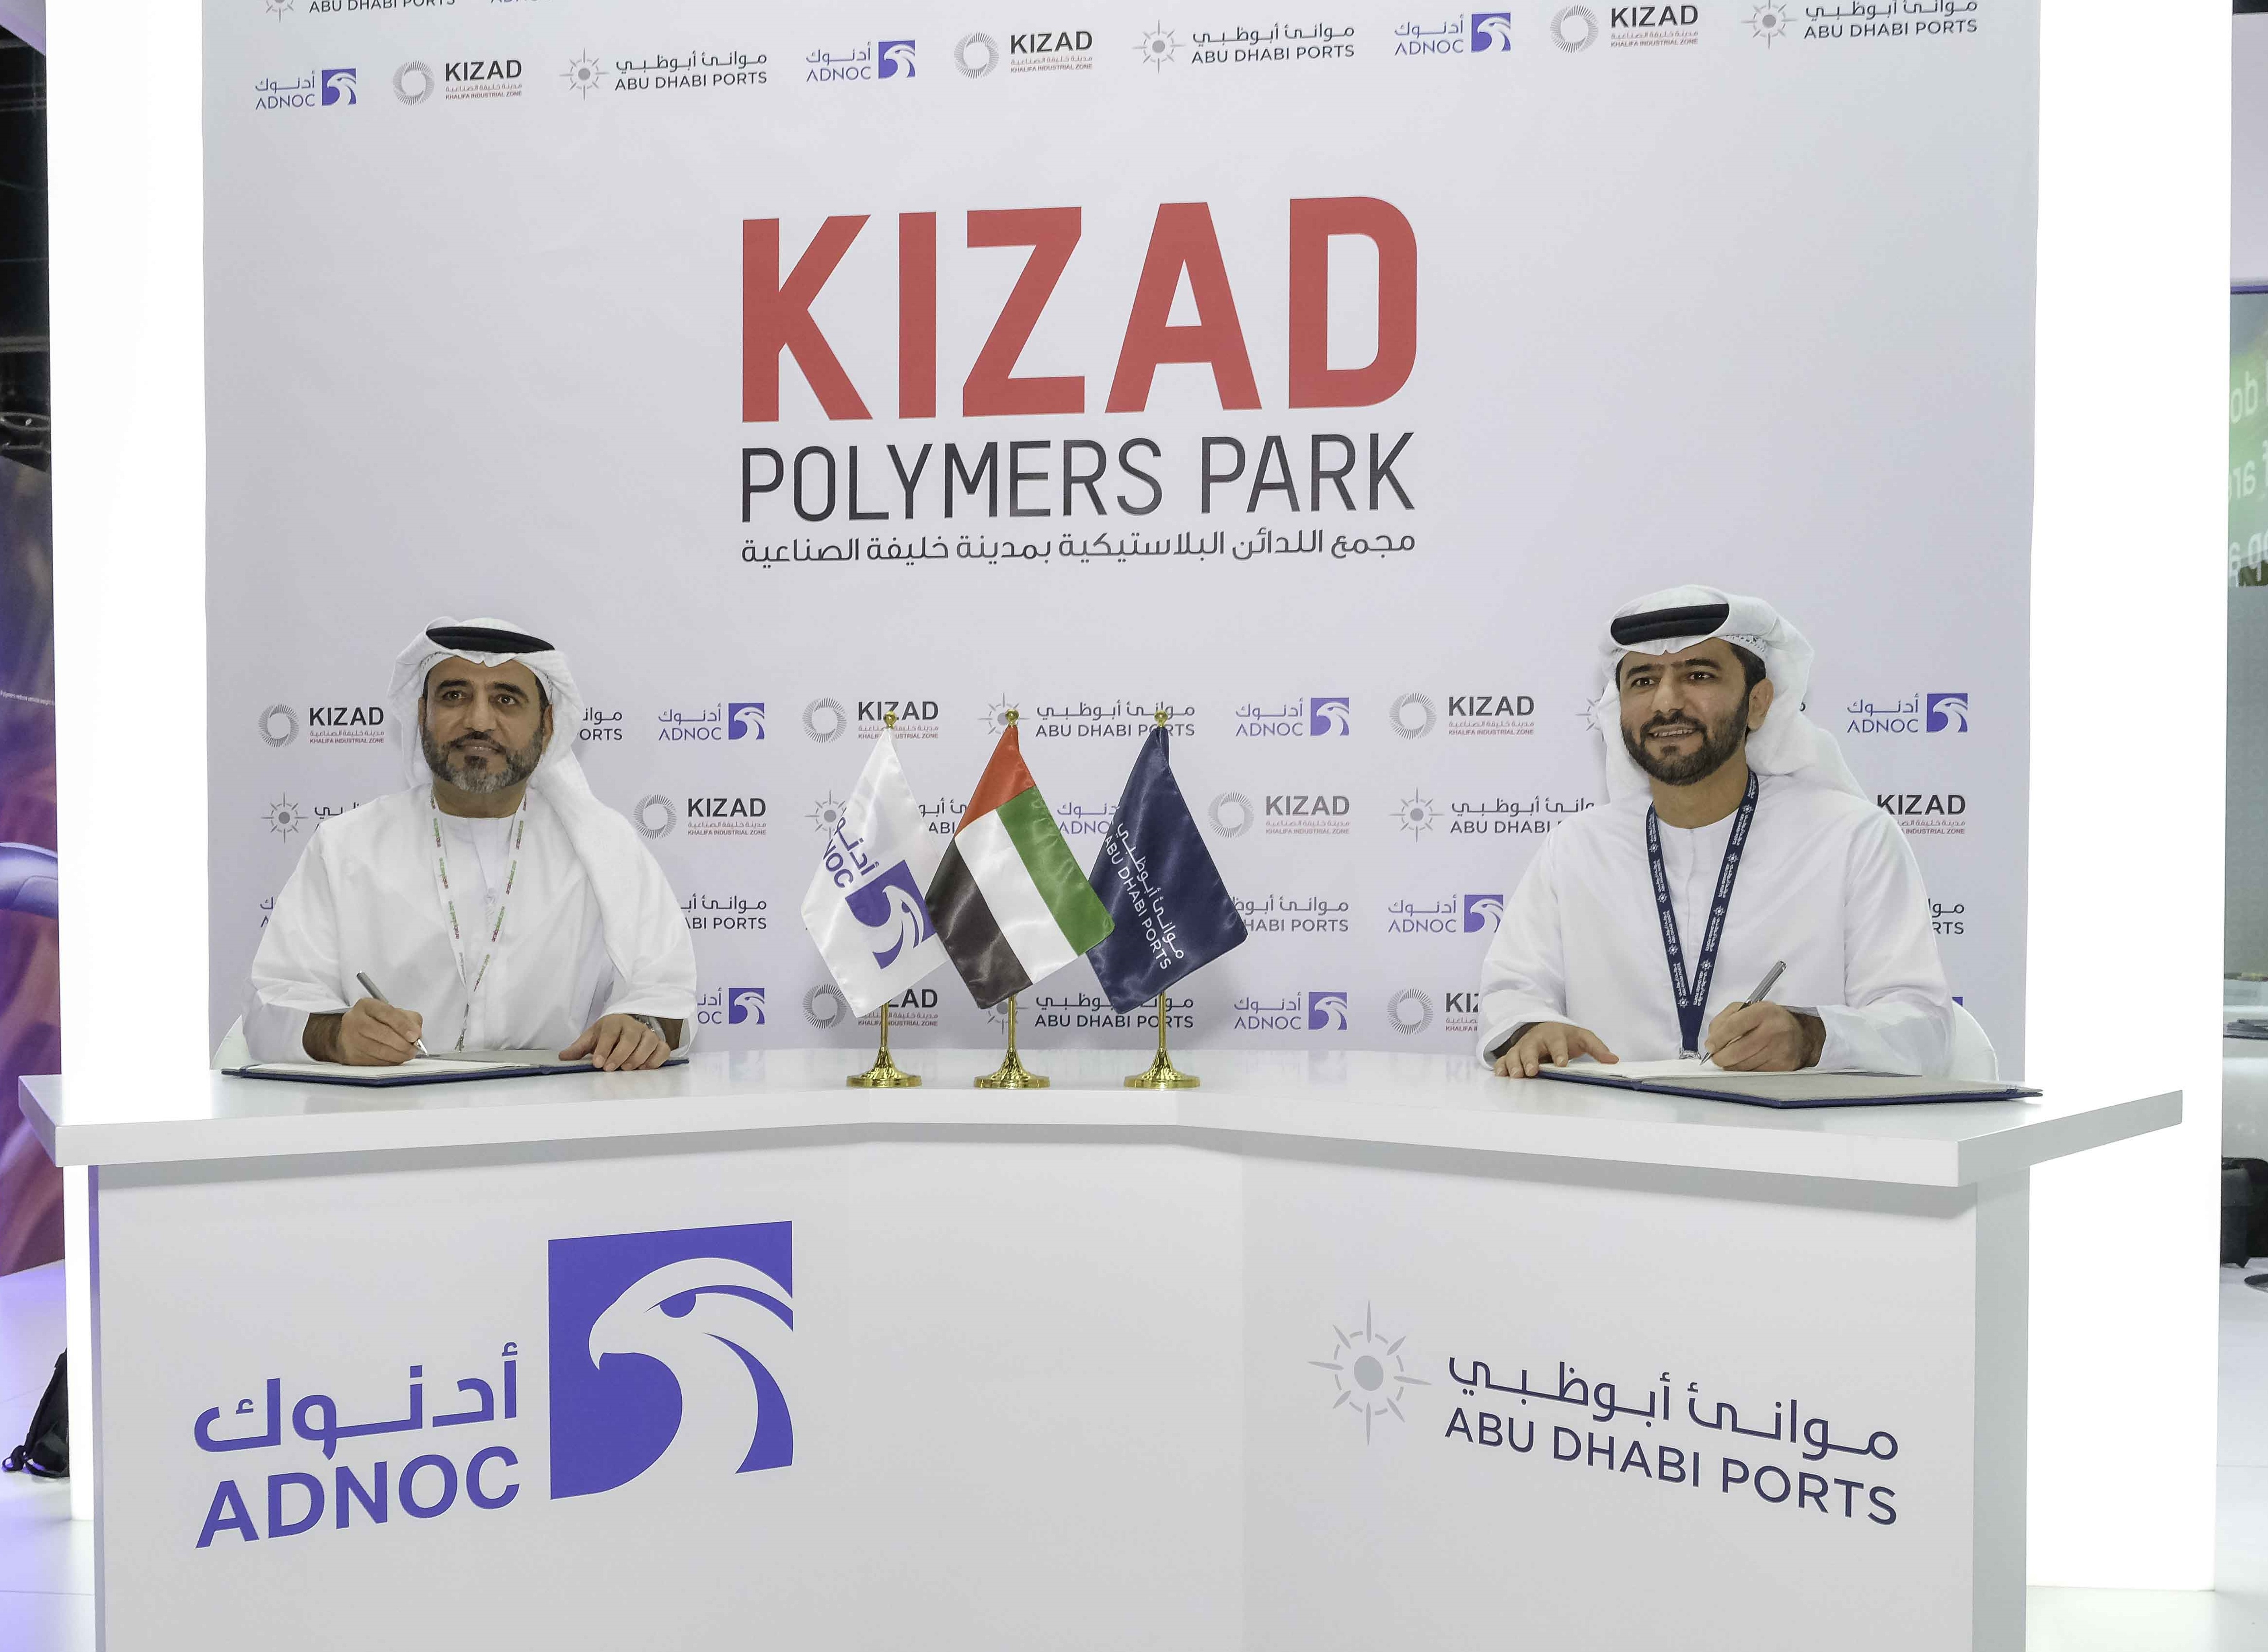 KIZAD launches Polymers Park to capitalise on USD 500 million